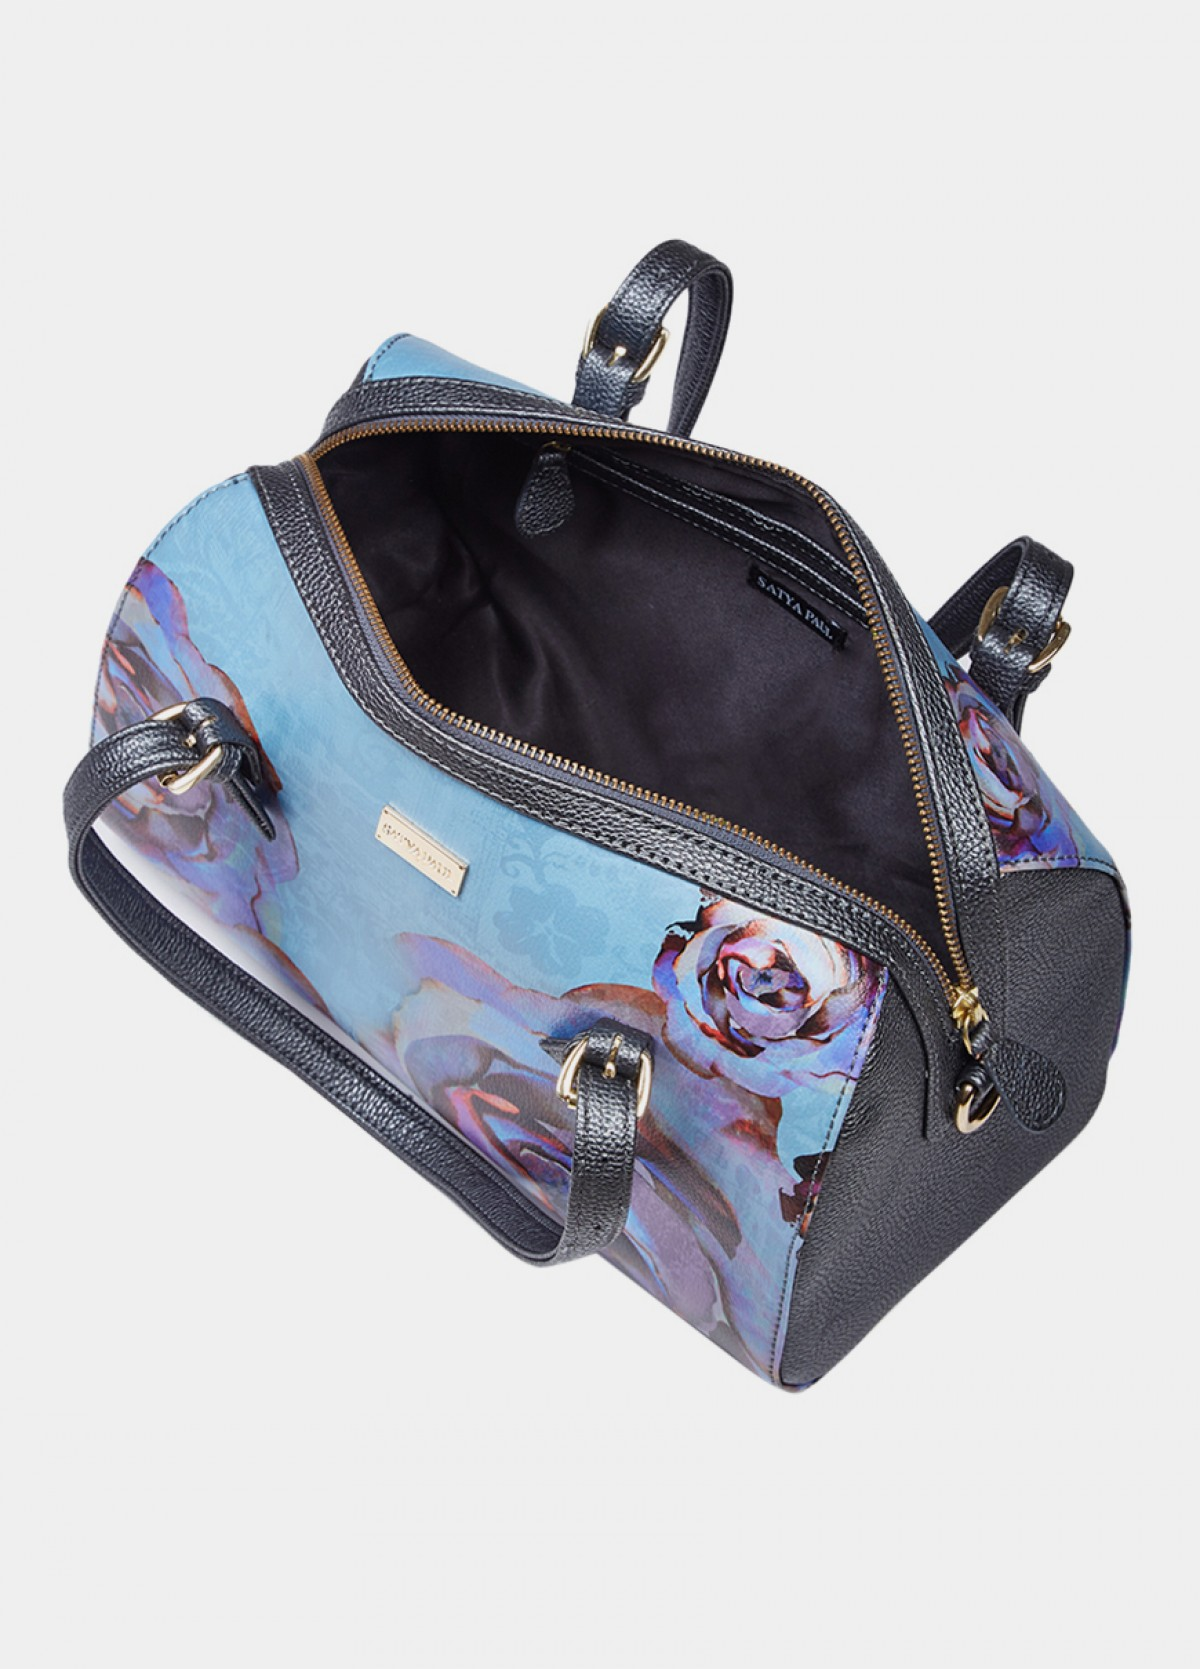 The Winter Florals Bowling Bag